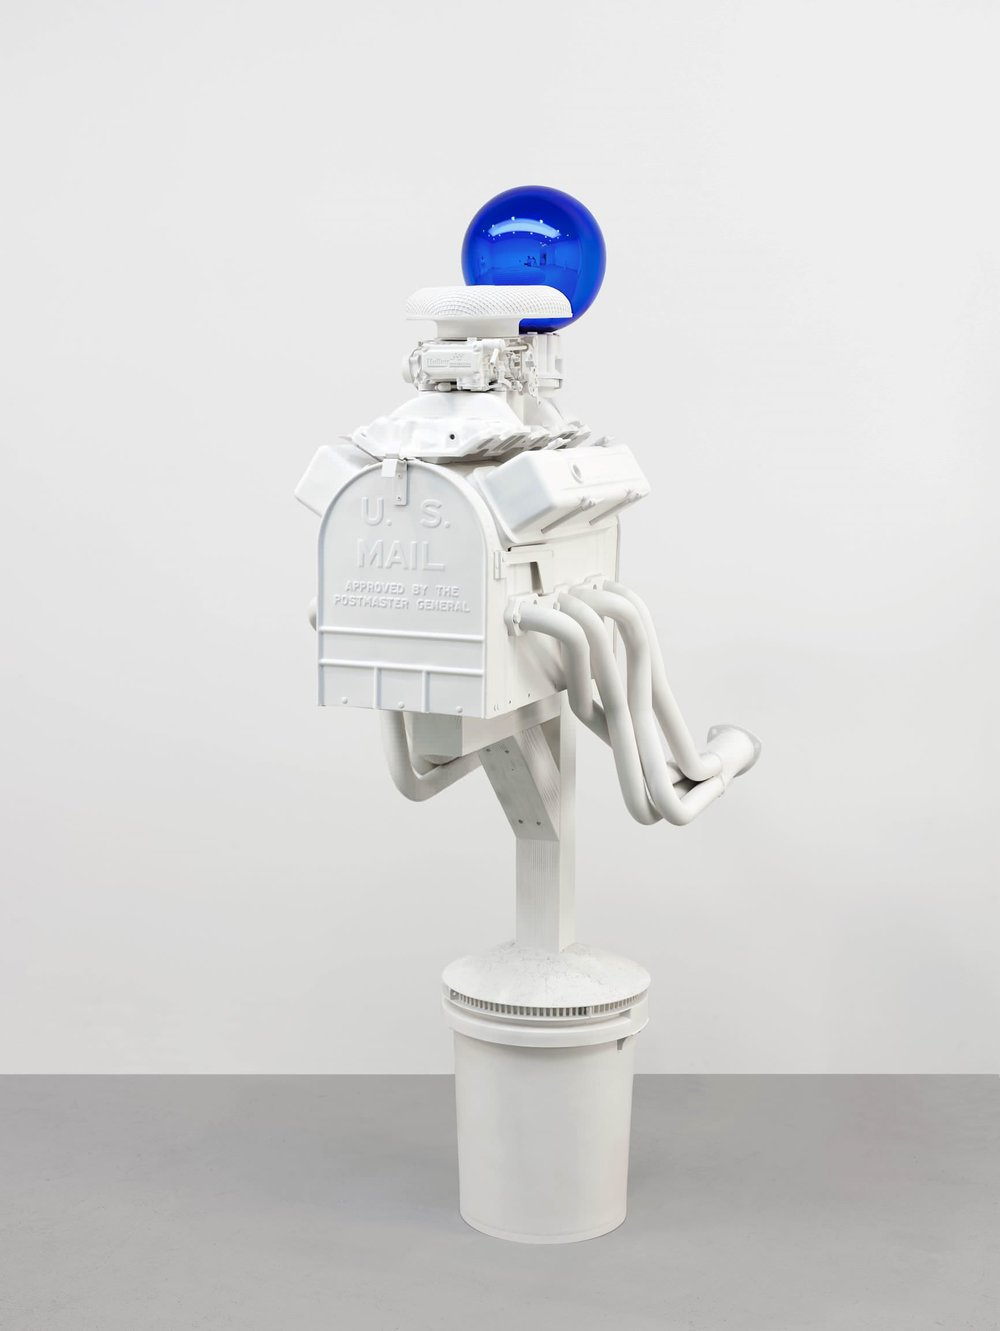 Jeff Koons (b. 1955); Gazing Ball (Mailbox); 2013; Plaster and glass; 188.6 x 61.9 x 105.4 cm; Artist's proof of an edition of 3 plus AP; Collection of the artist © Jeff Koons. Photo: Tom Powel Imaging. Courtesy David Zwirner